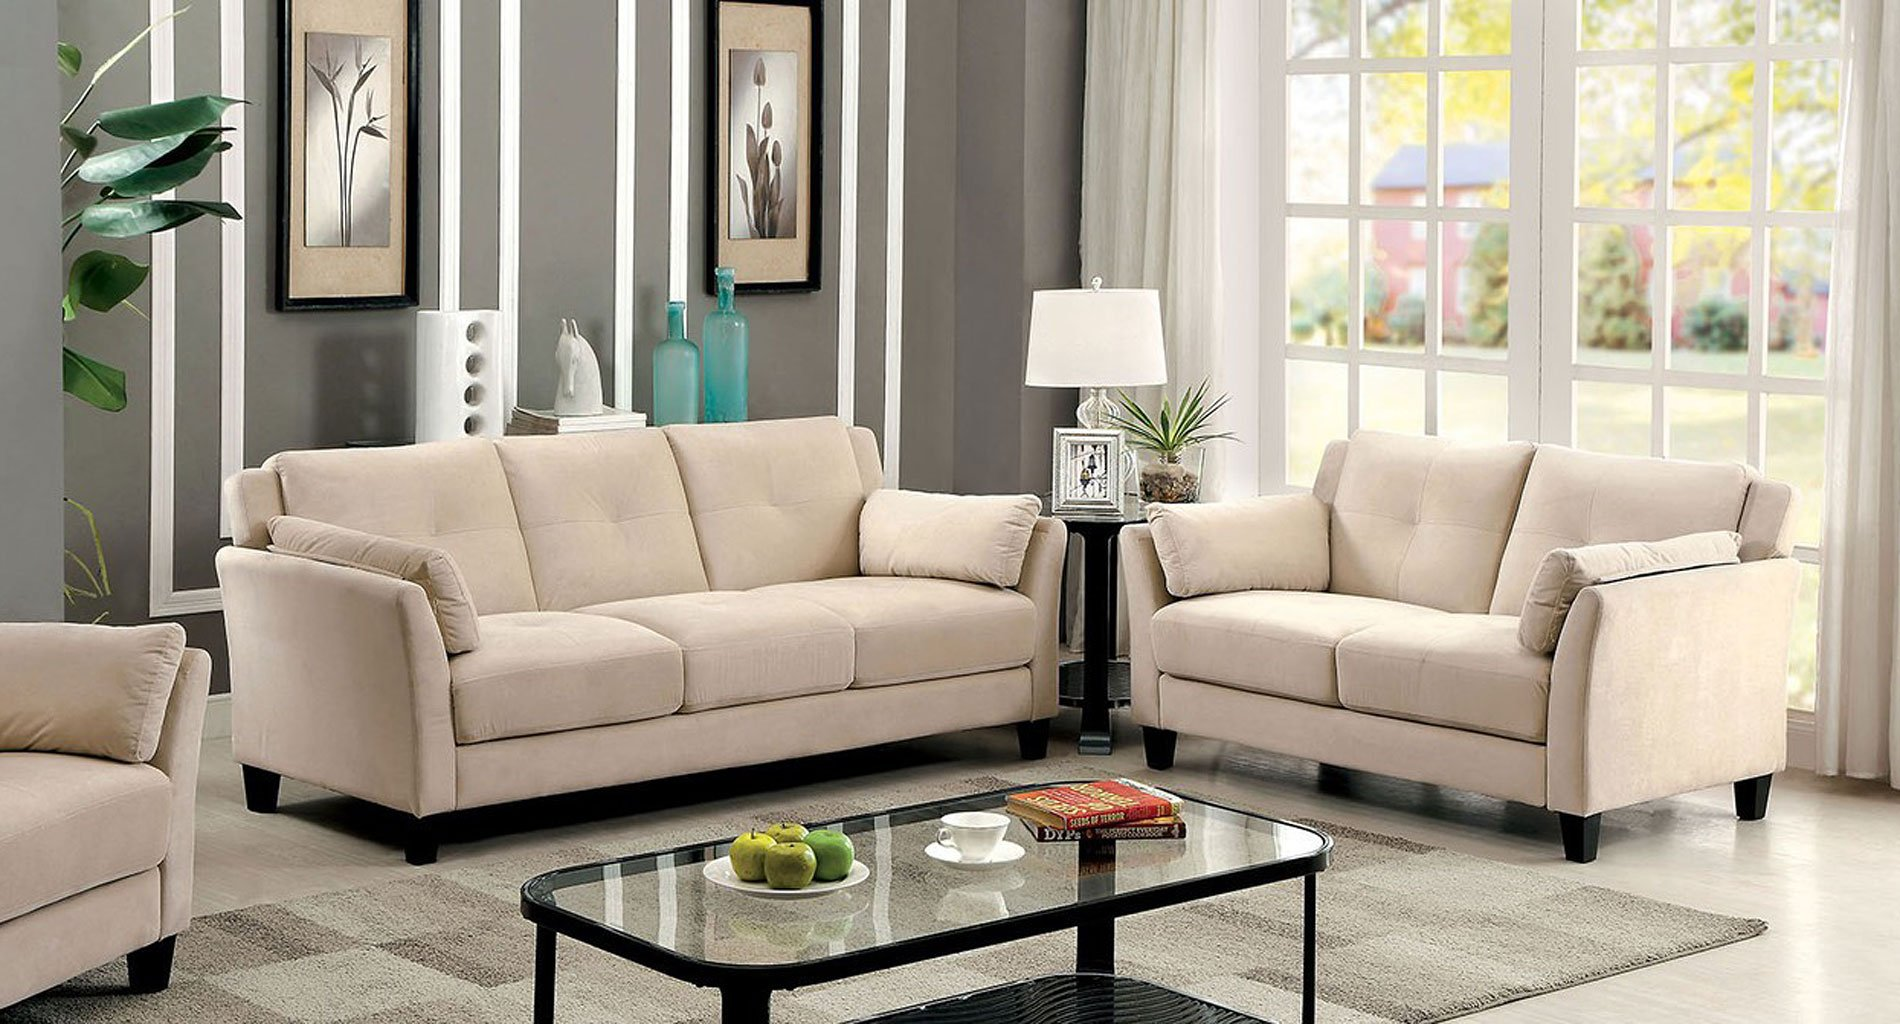 Living Room Furniture: Ysabel Living Room Set (Beige)